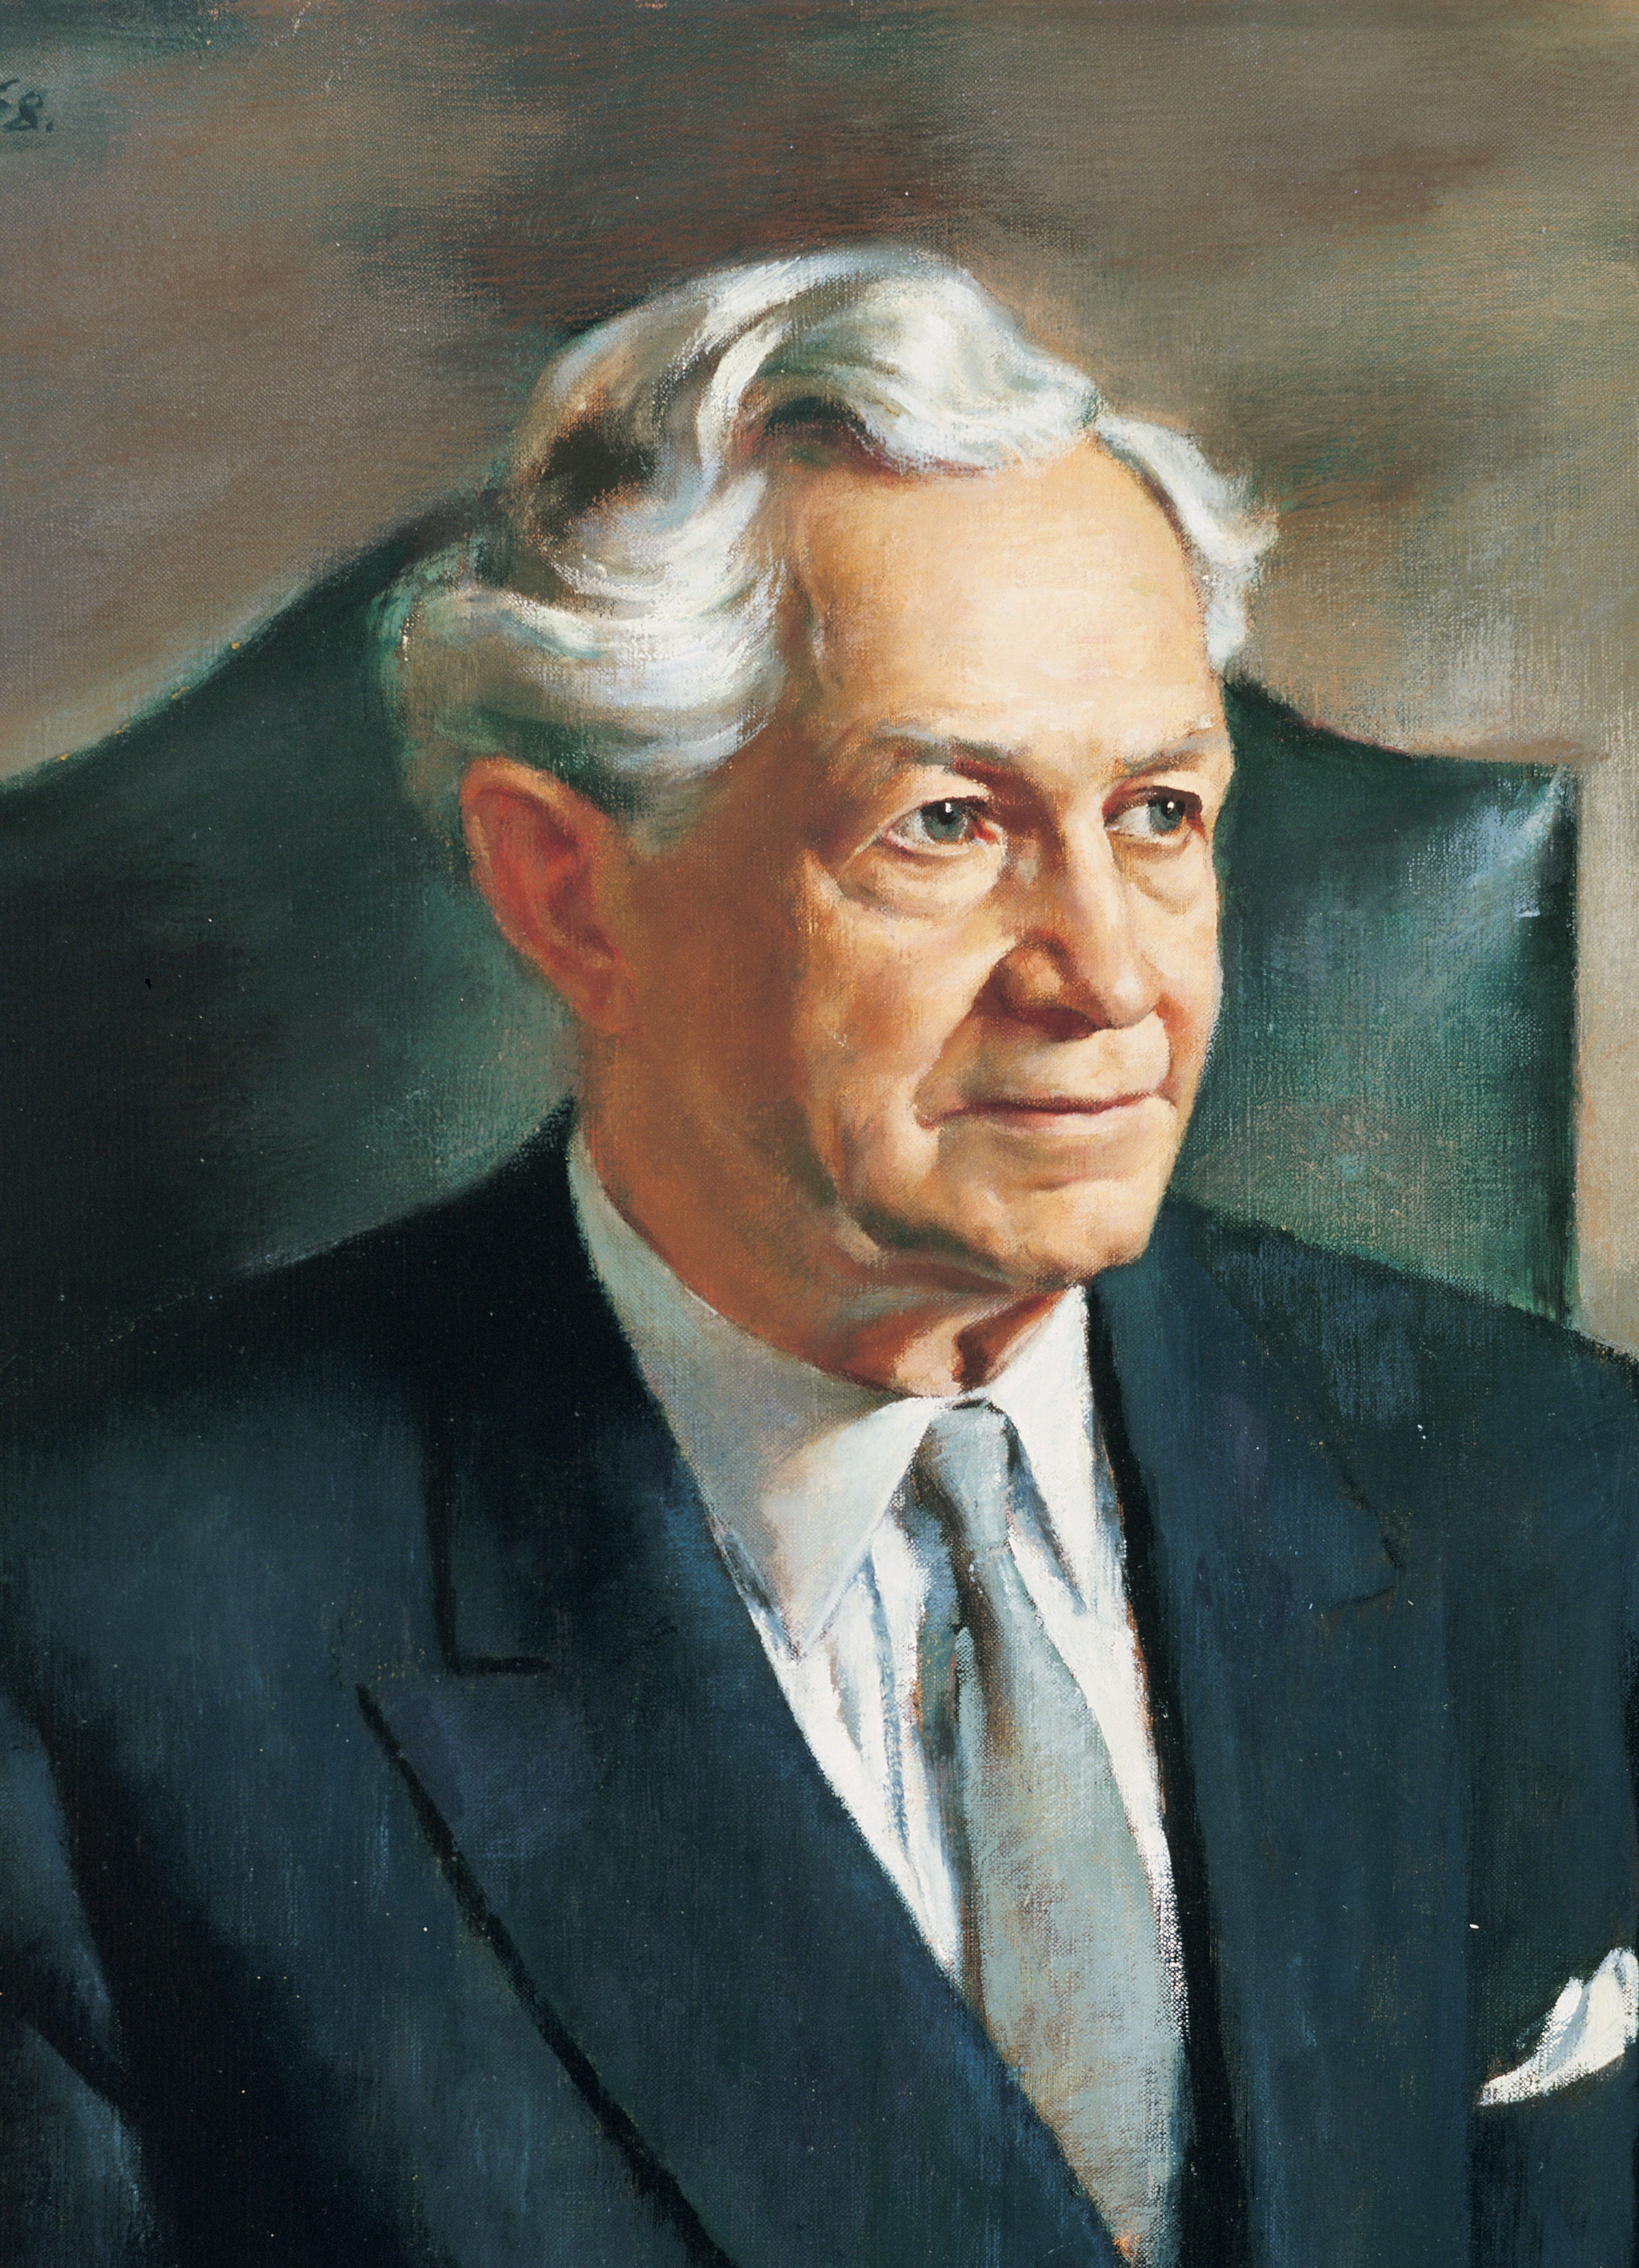 David O. McKay, by Alvin Gittins; GAK 514; GAB 130; Primary manual 3–19; Our Heritage, 114–19. President David O. McKay served as the ninth President of the Church from 1951 to 1970.